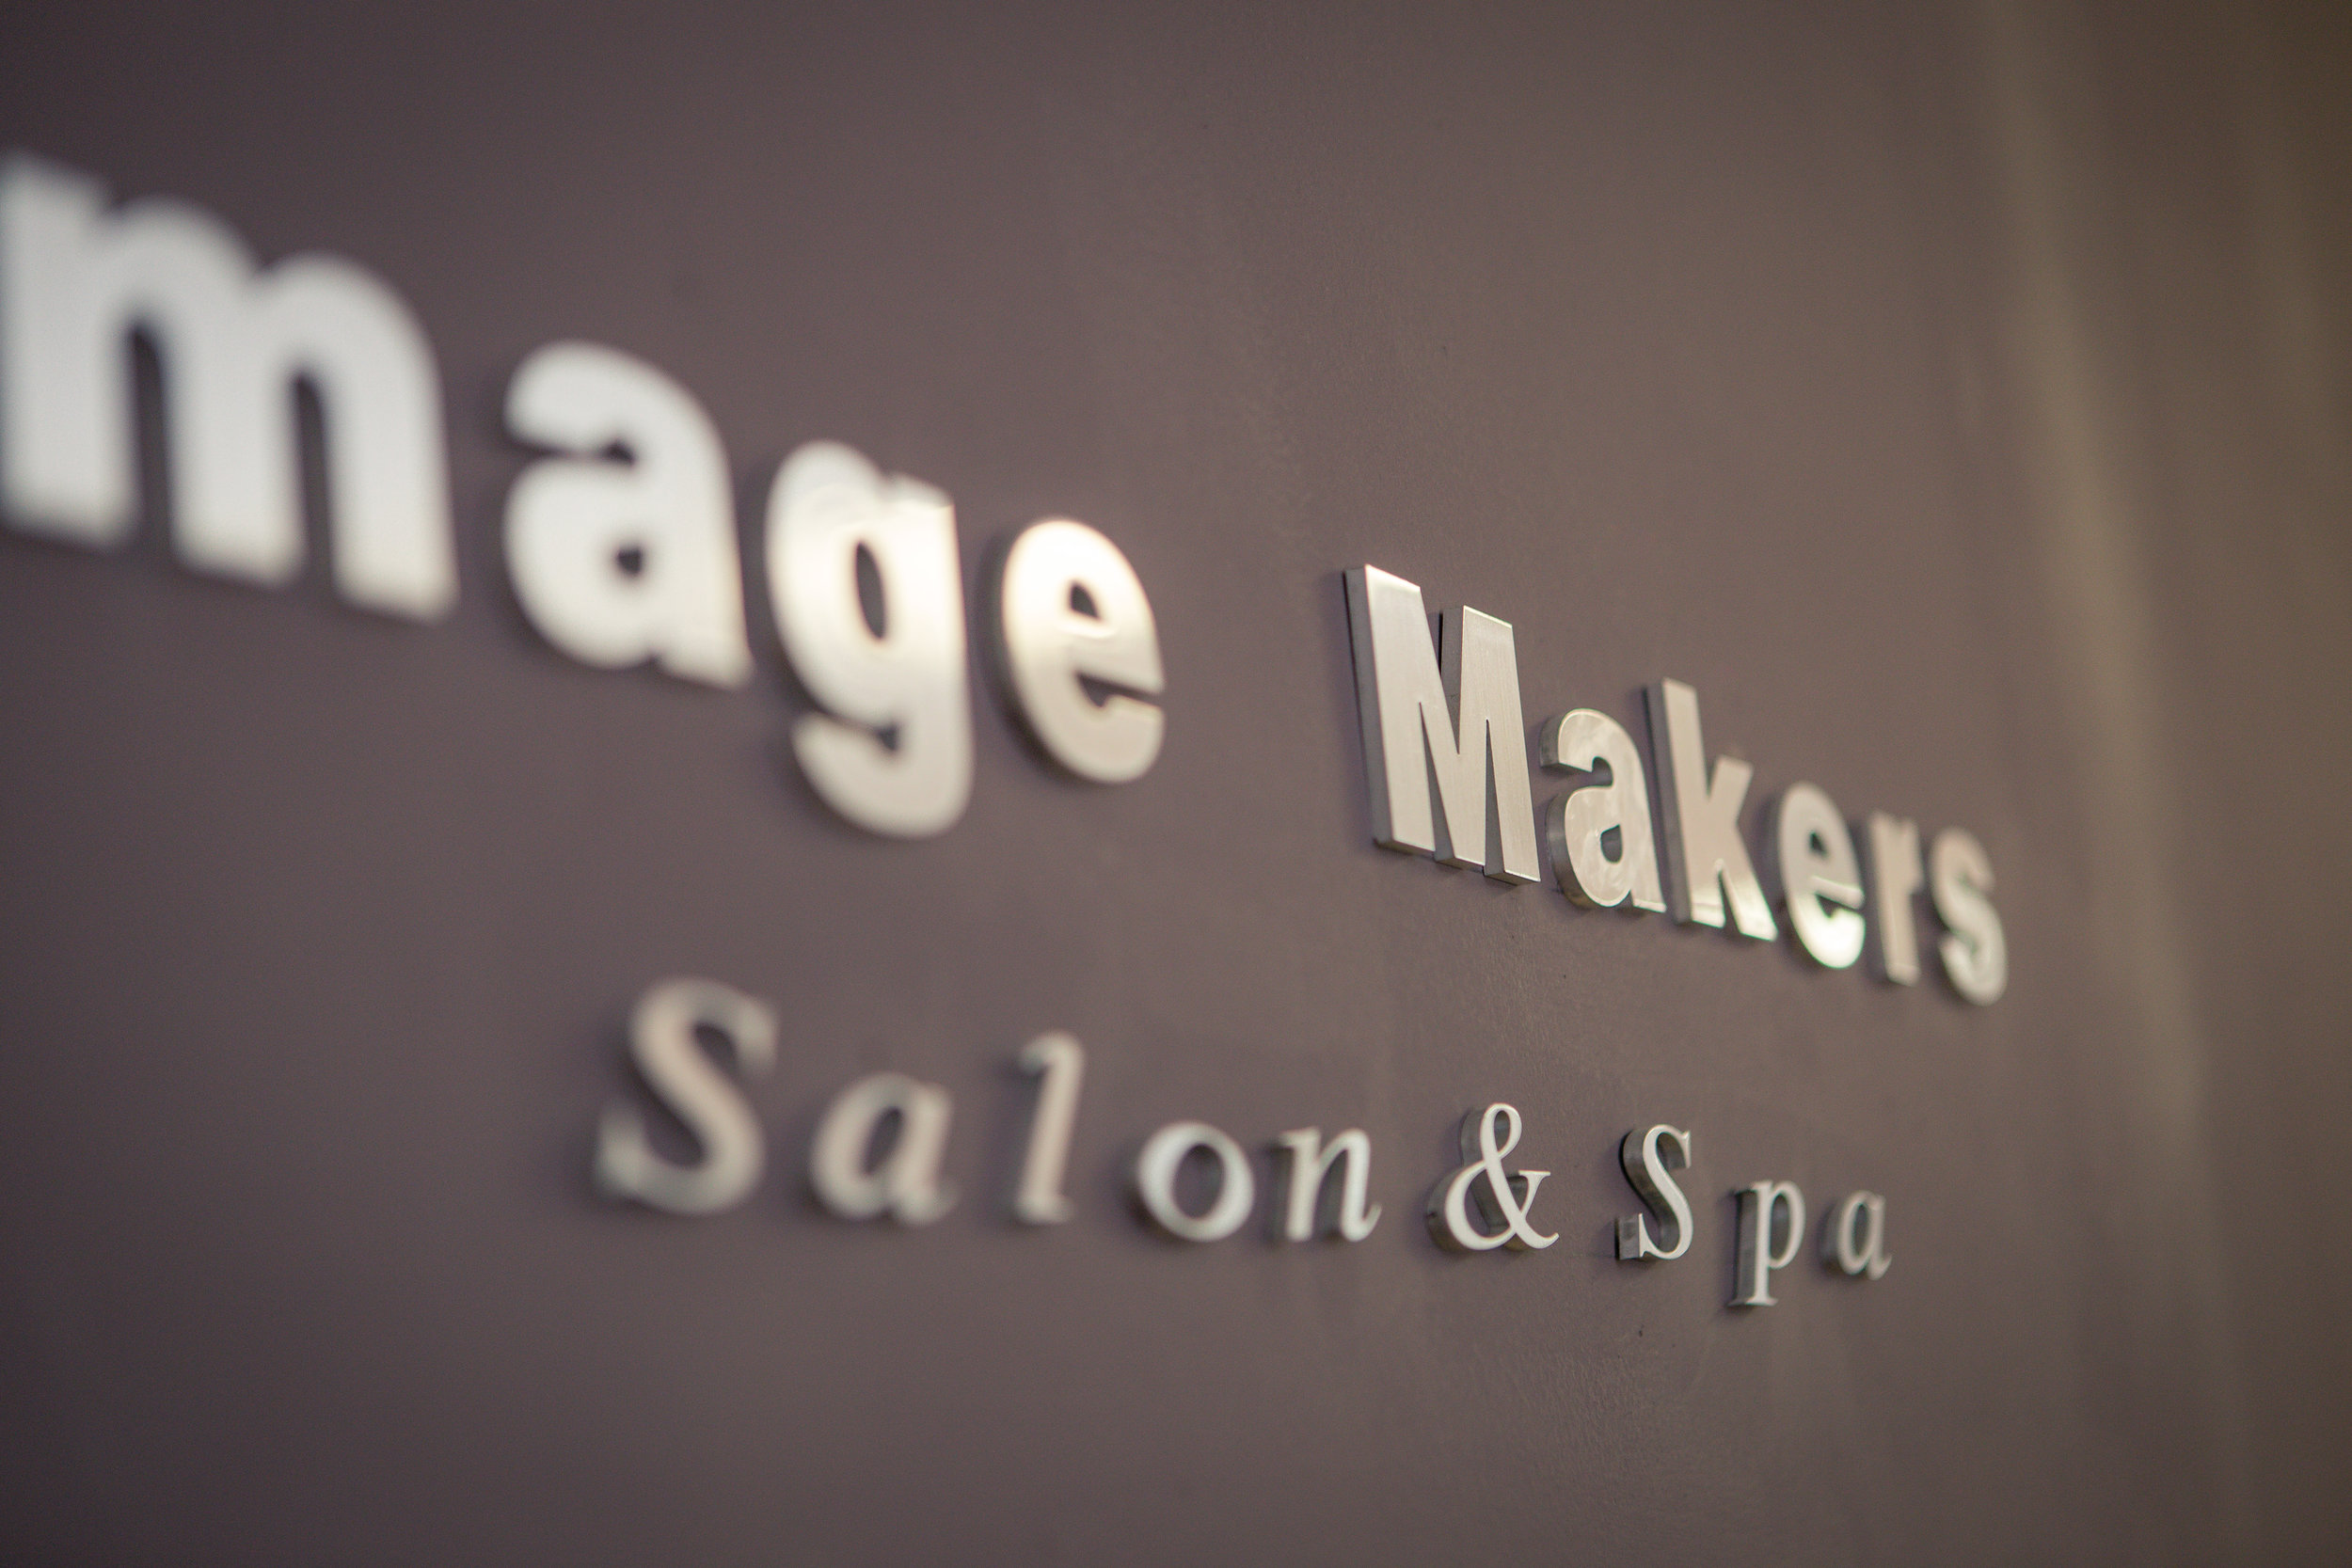 Image Makers Salon & Spa